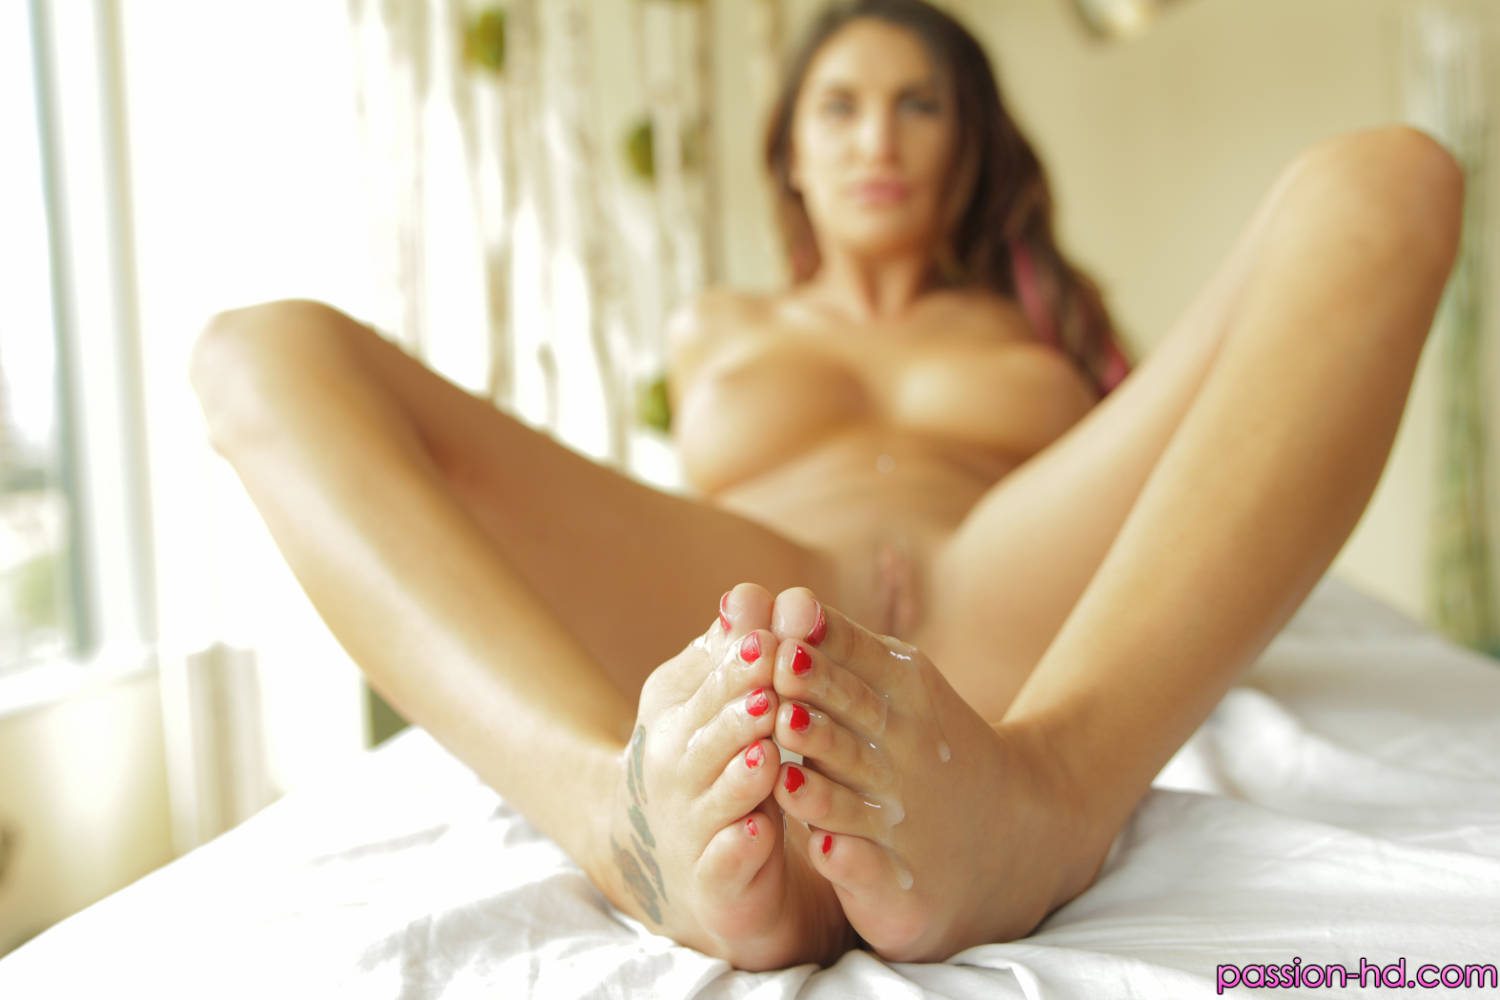 Passion HD August Ames in Full Body Rub Down 13